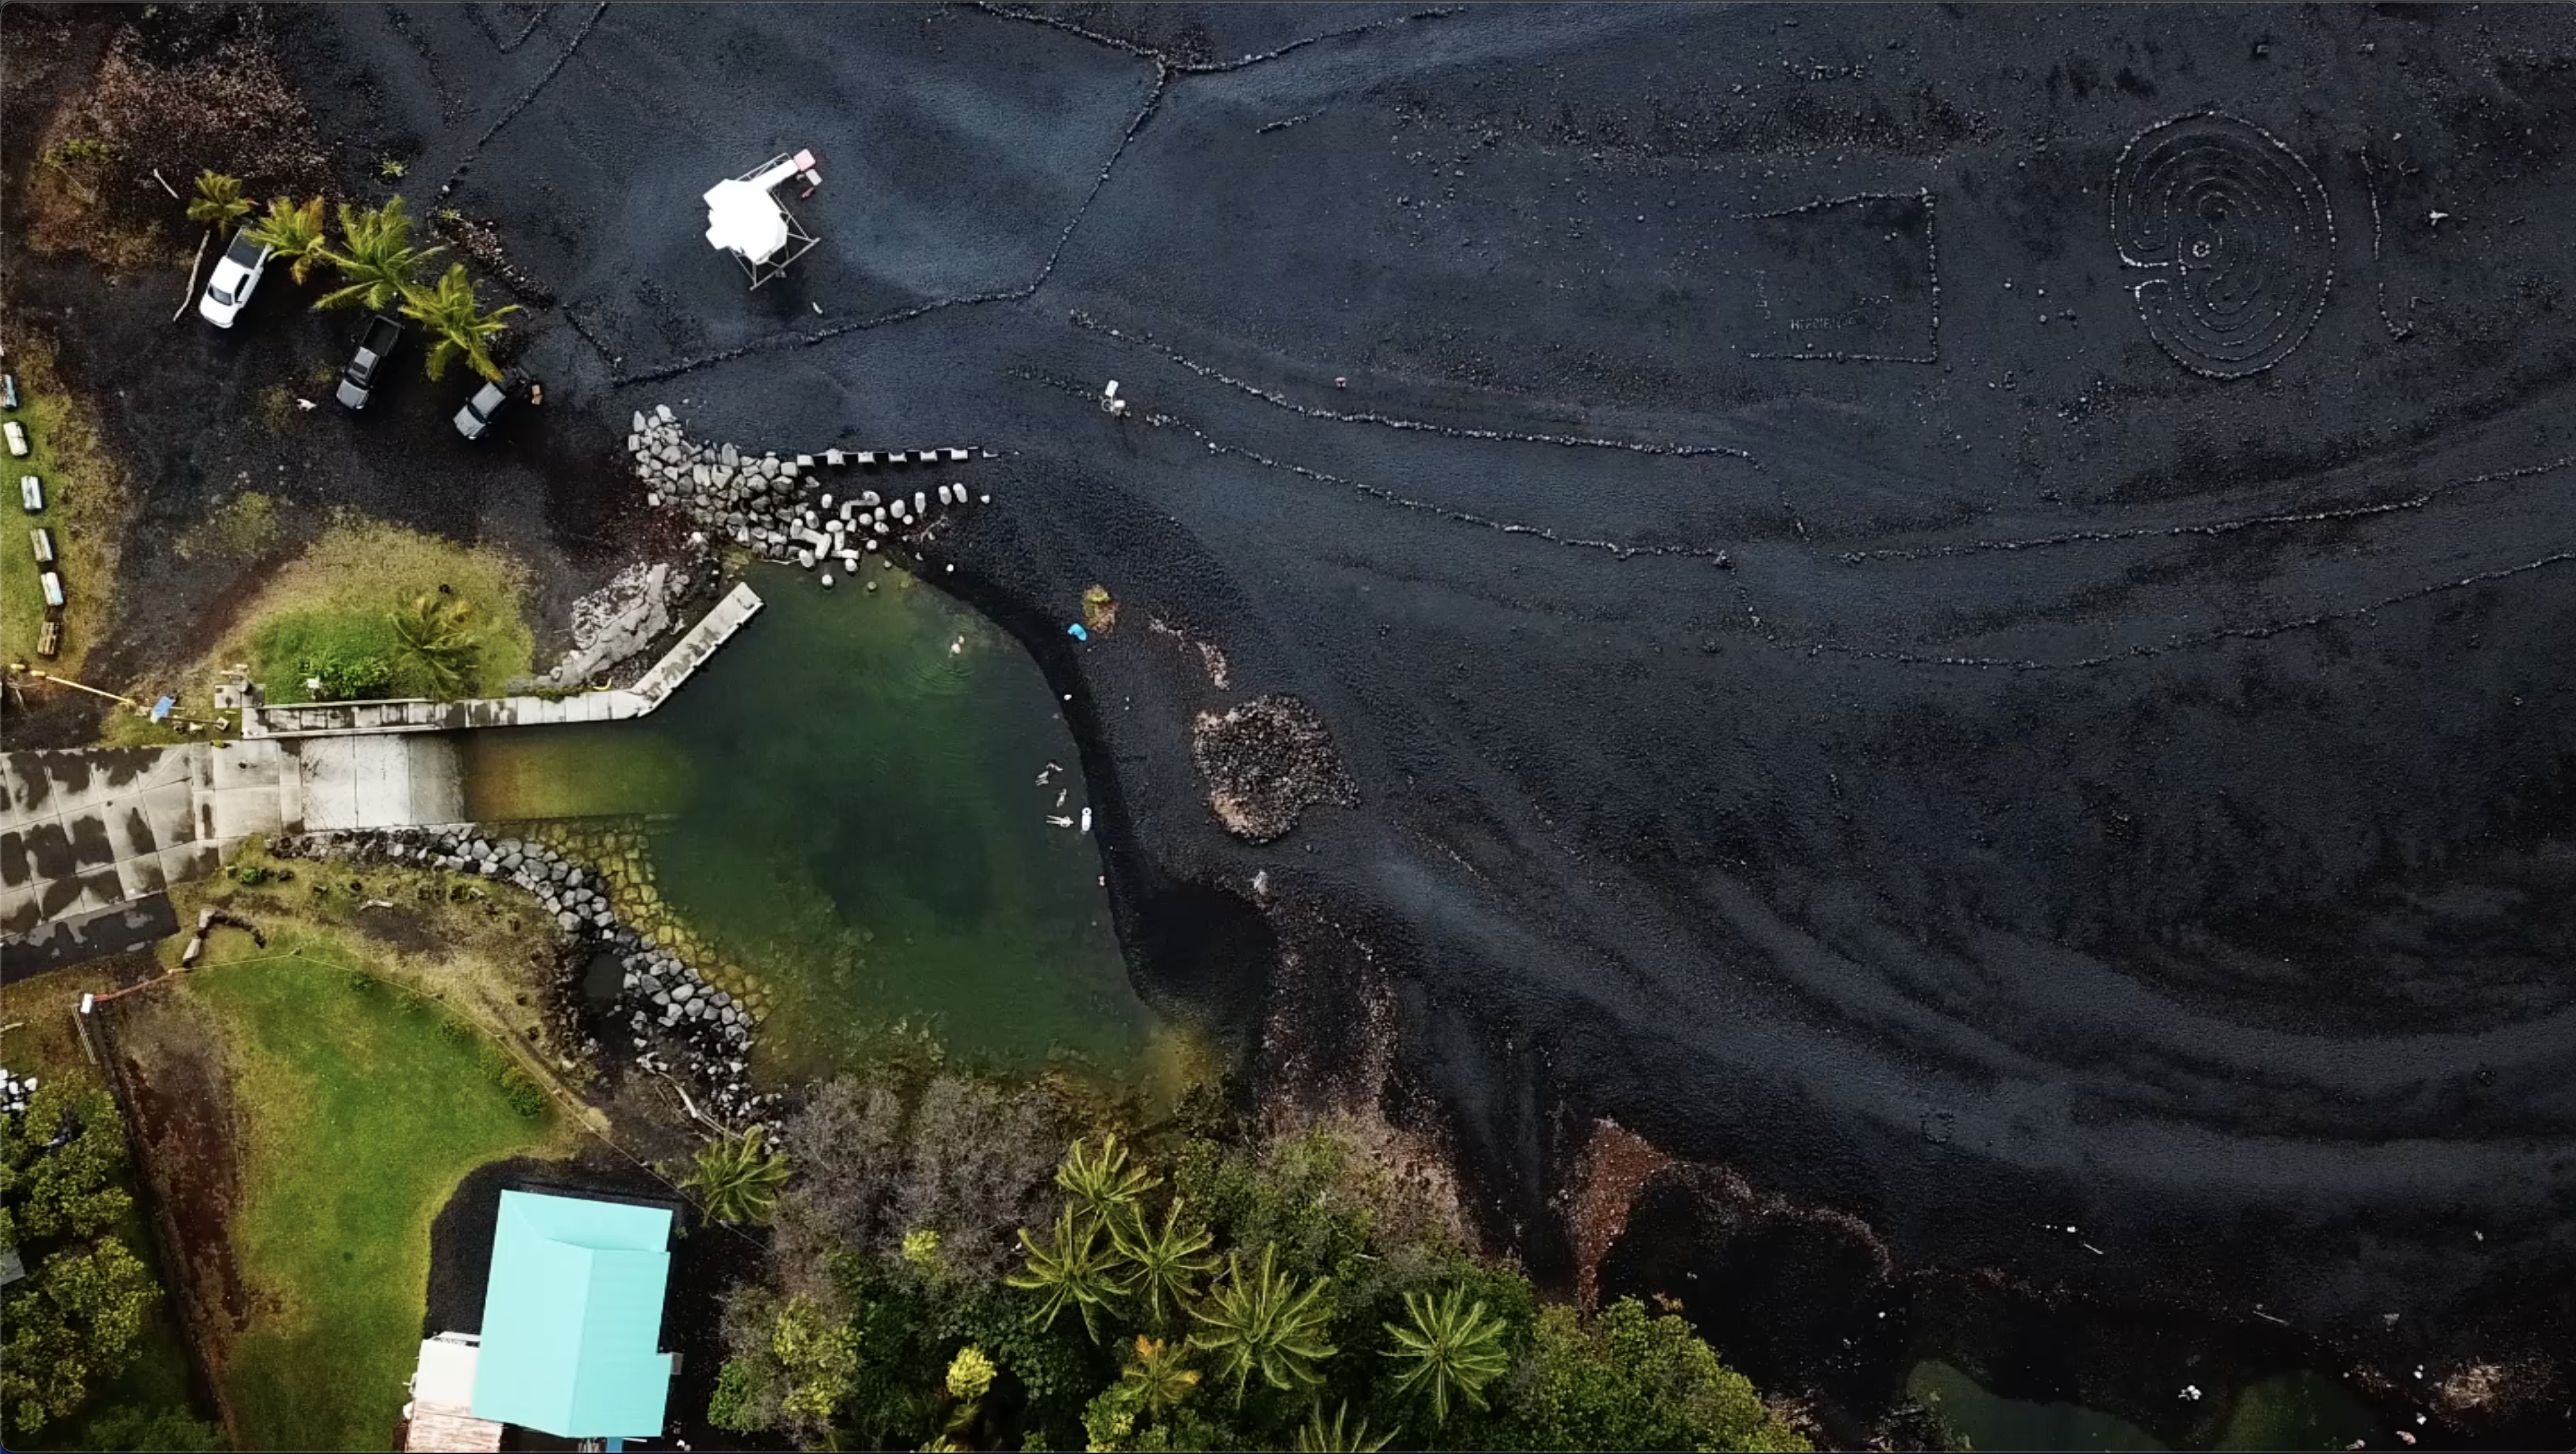 Pohoiki Boat Ramp Restoration After 2018 Kīlauea Eruption to Cost Millions